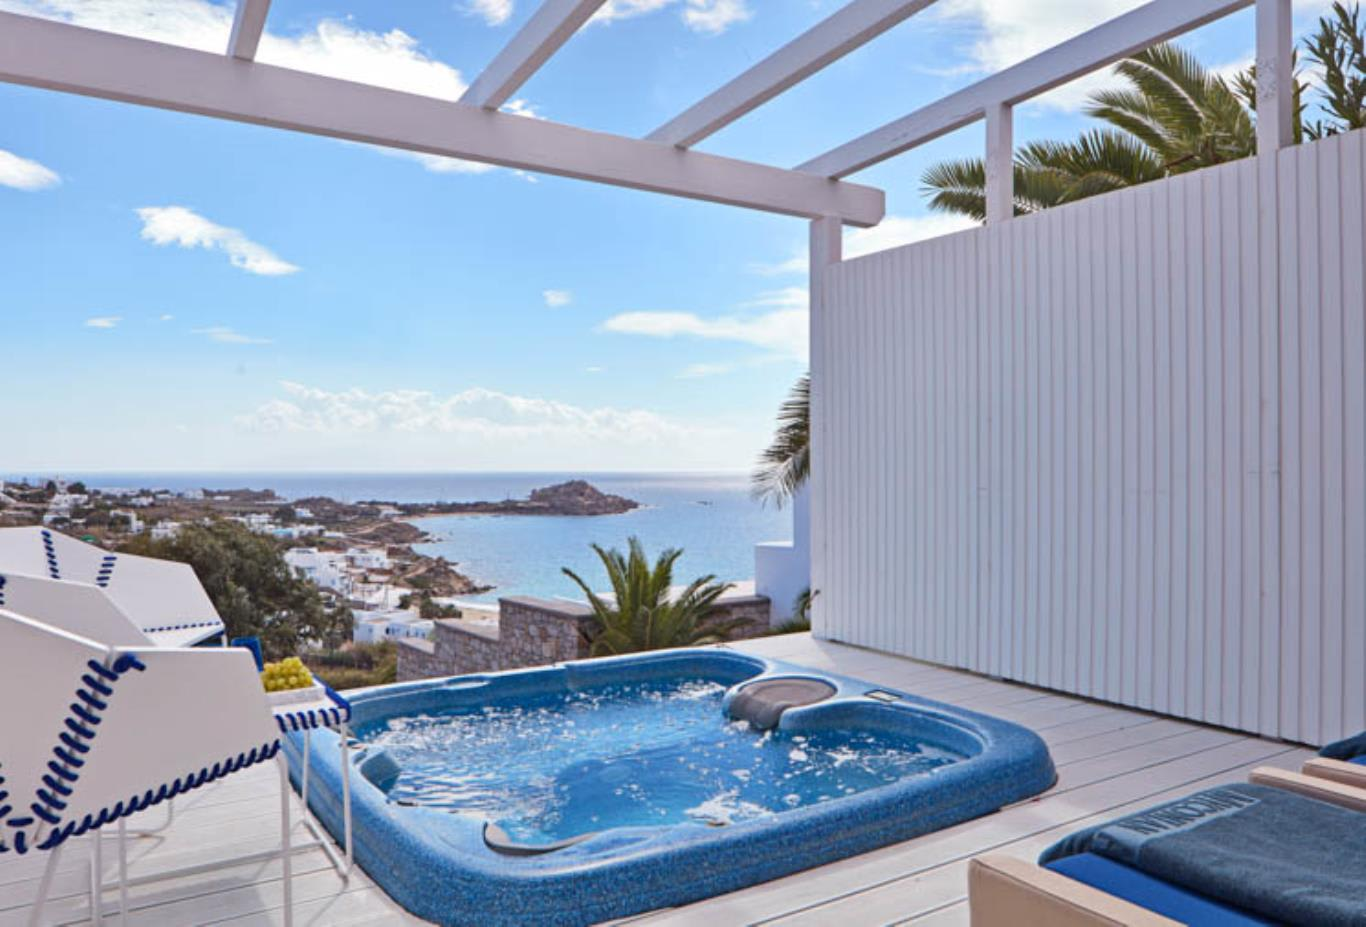 True Blue room Jacuzzi